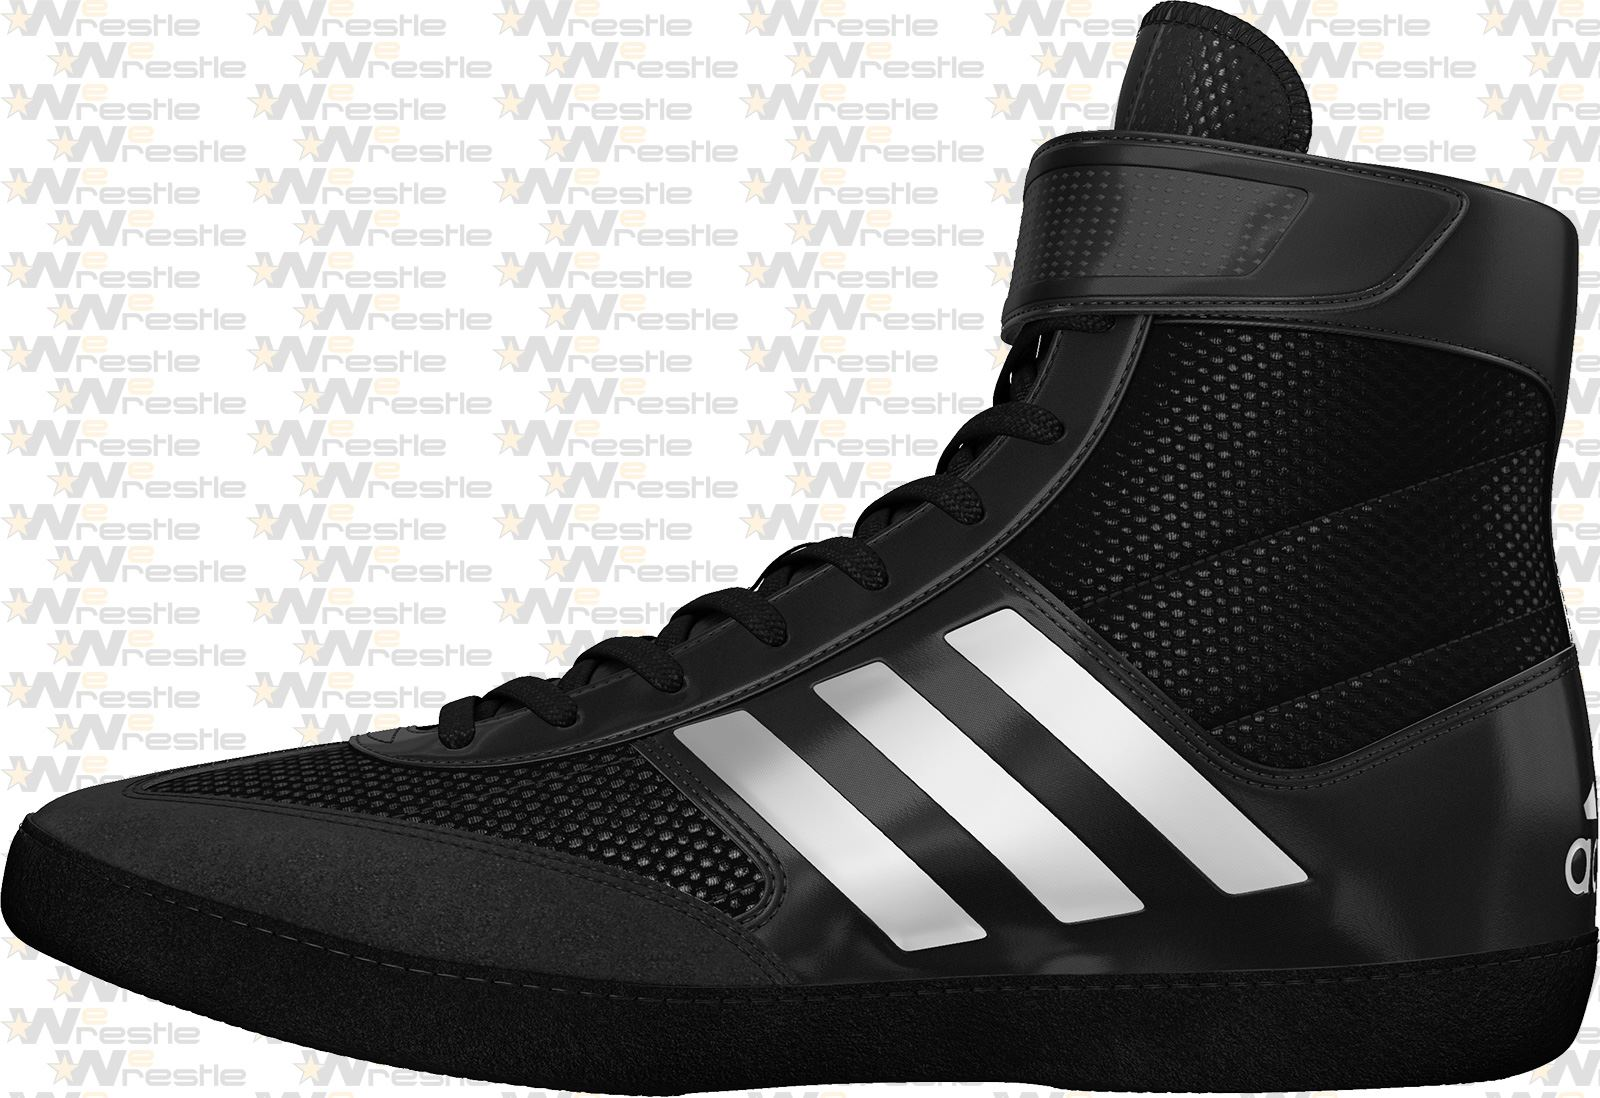 01fb46c768c best price adidas extero ii junior wrestling shoes black side 07436 2b2ad   where can i buy adidas combat speed 5 wrestling shoes 48729 c7b9e